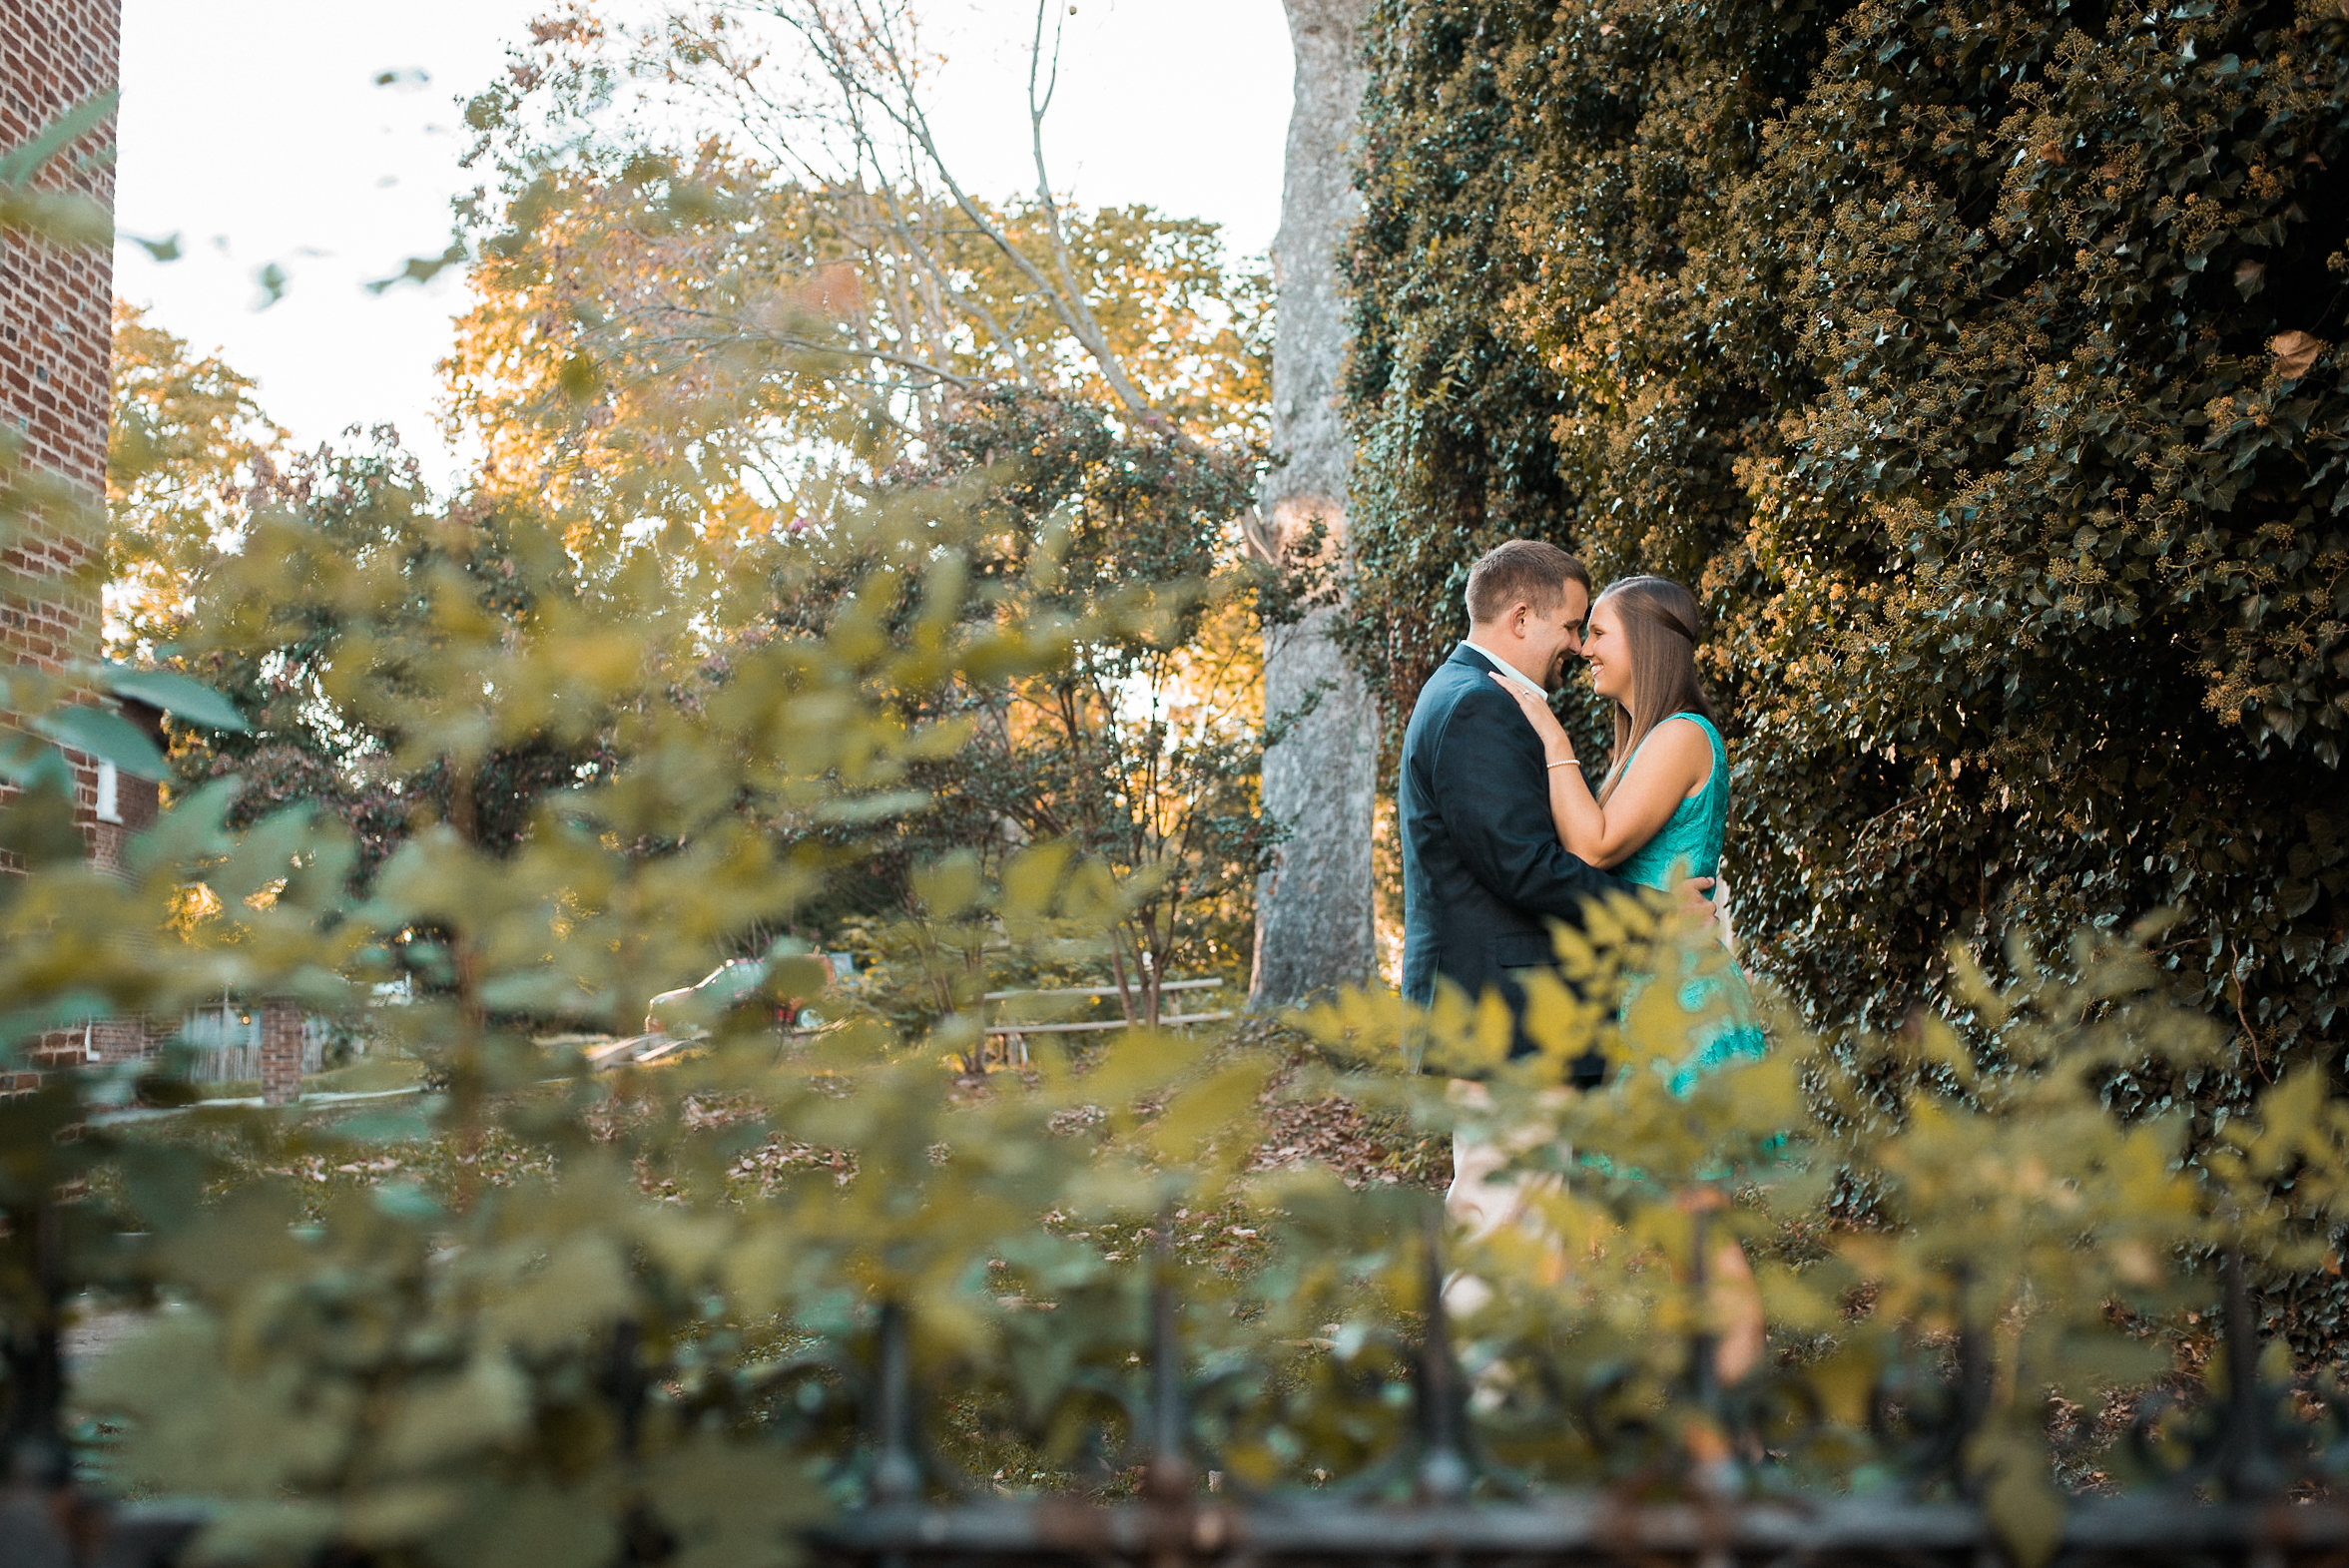 Couple kissing behind plants